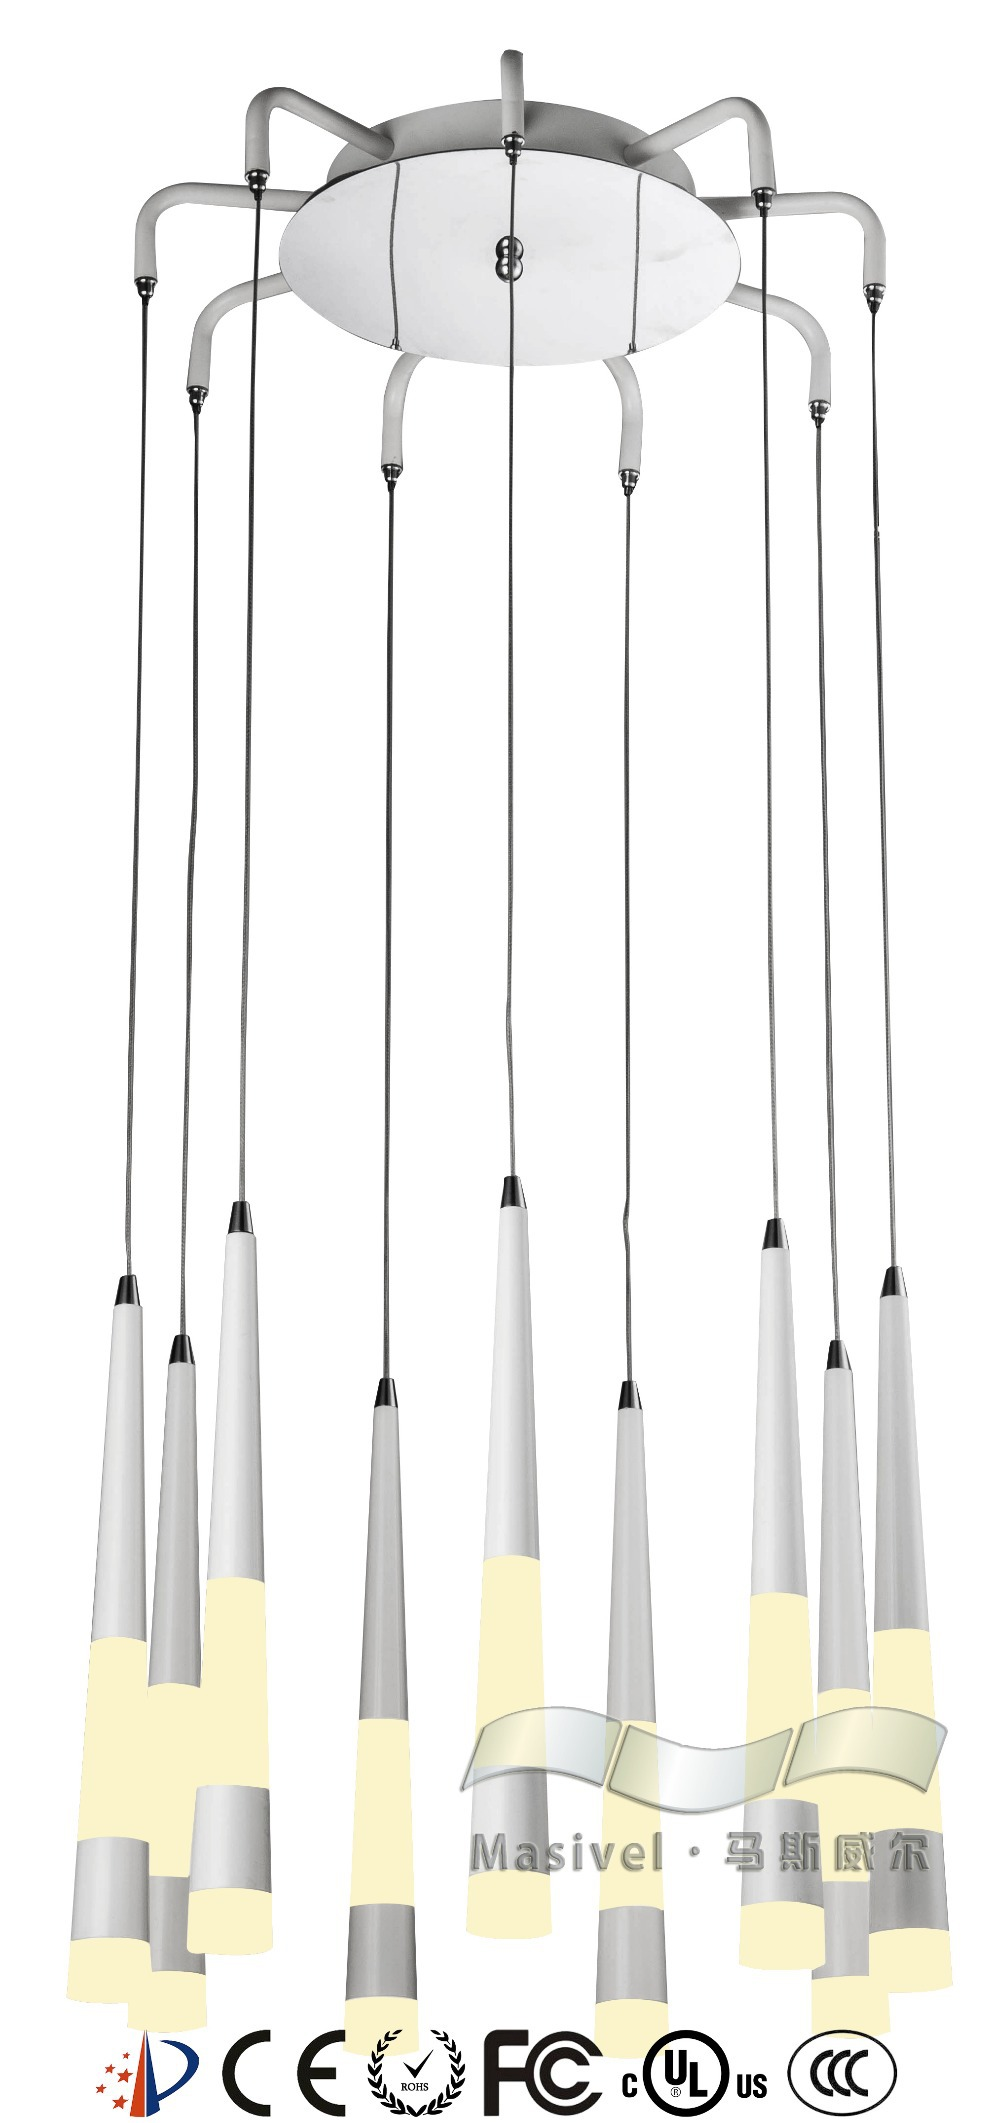 Suspended light led luminaire suspended pendant lighting for Luminaire double suspension